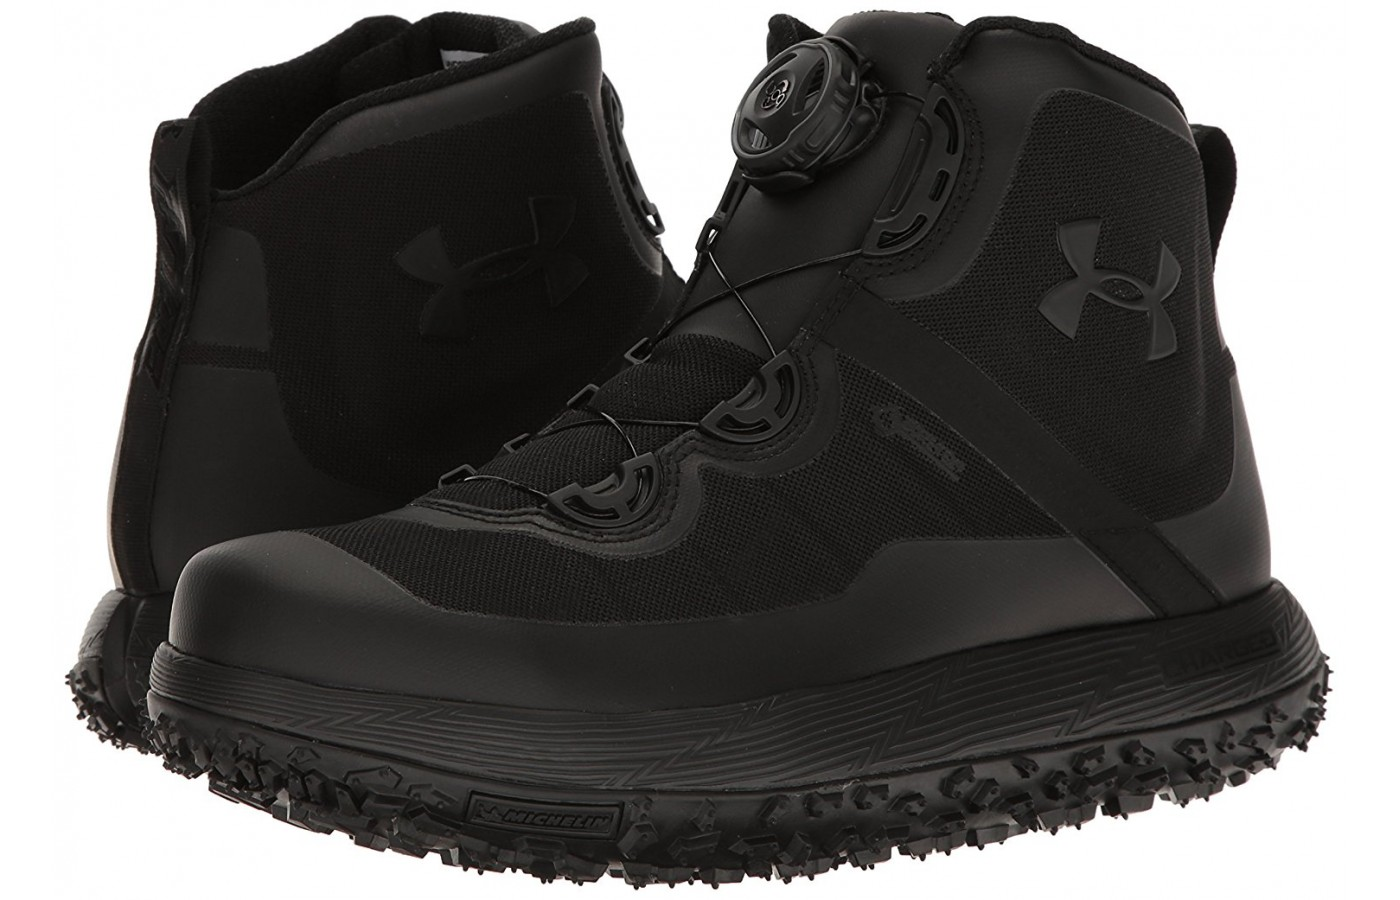 Under Armour Fat Tire GTX pair